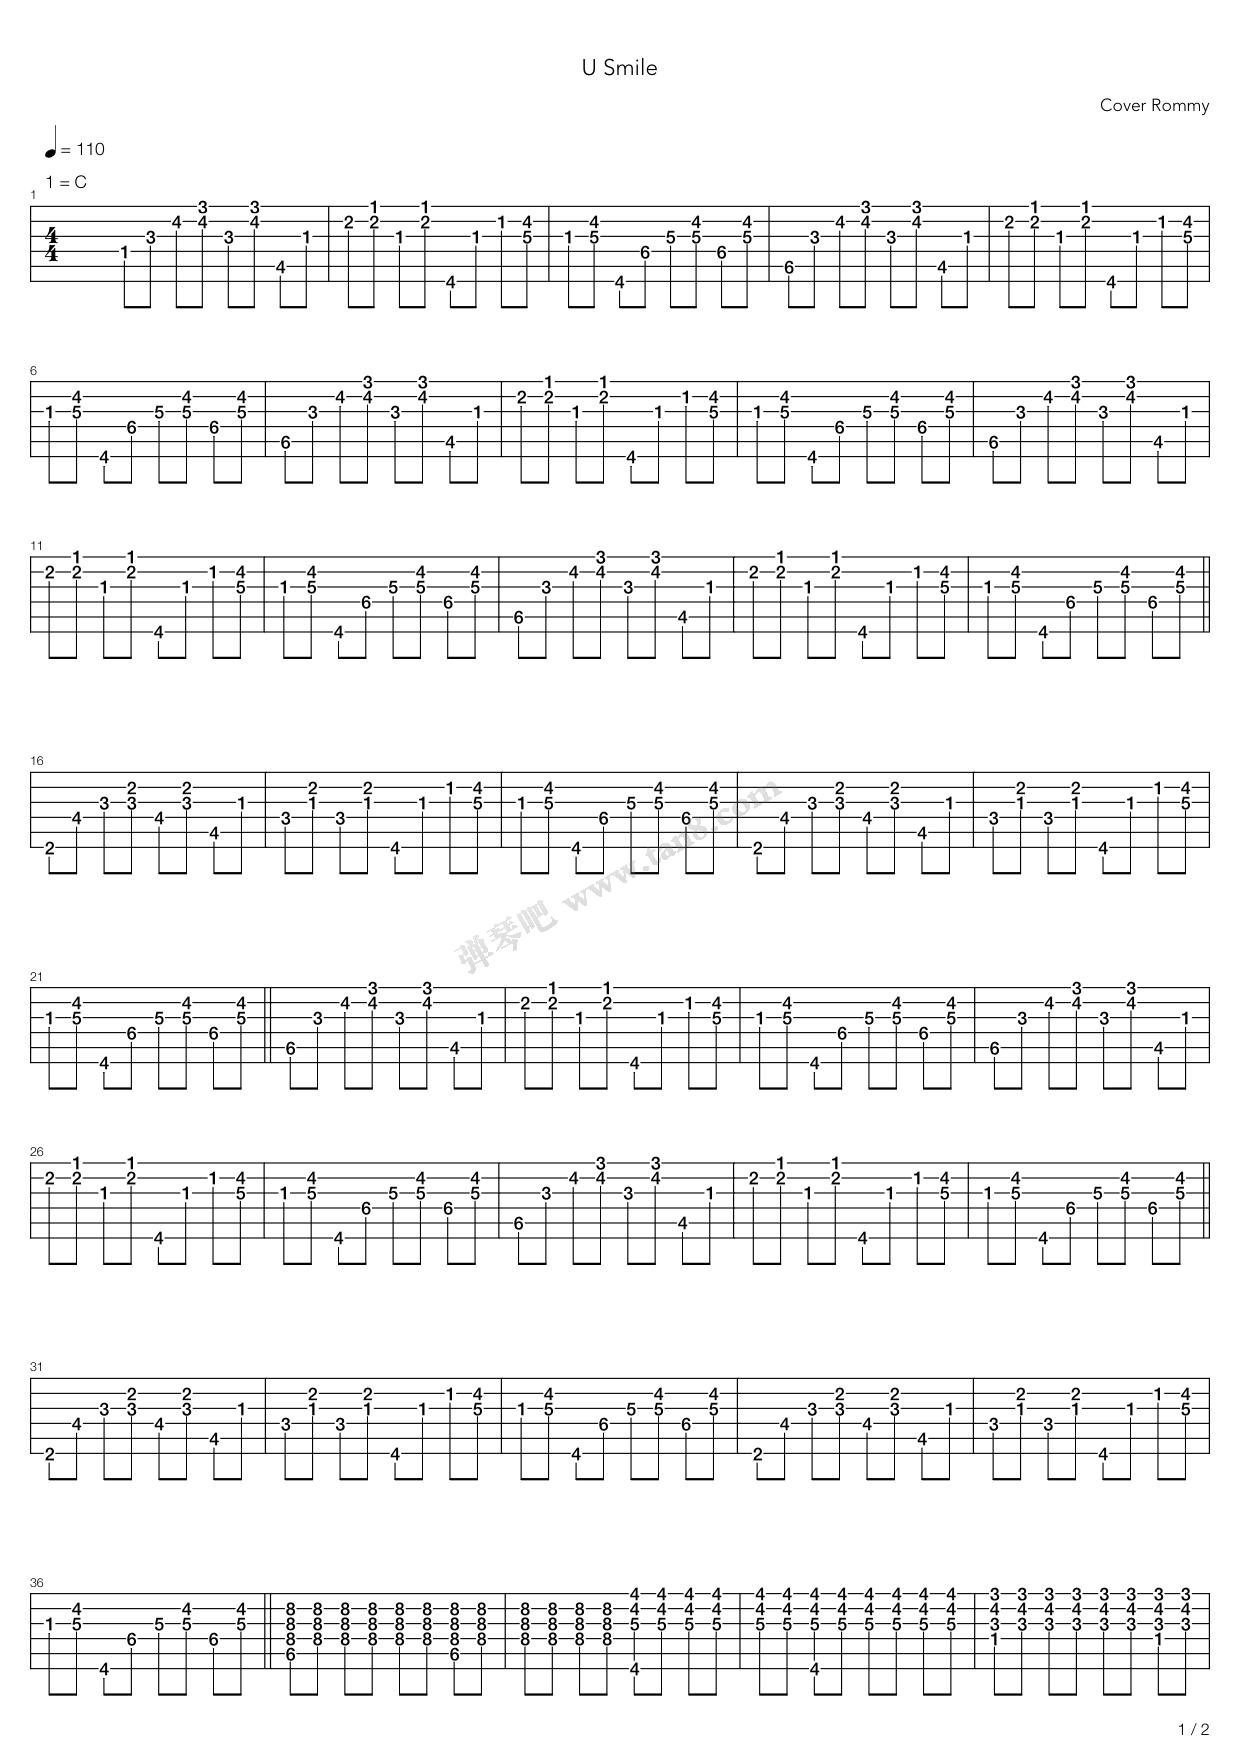 U Smile By Justin Bieber Guitar Tabs Chords Sheet Music Free